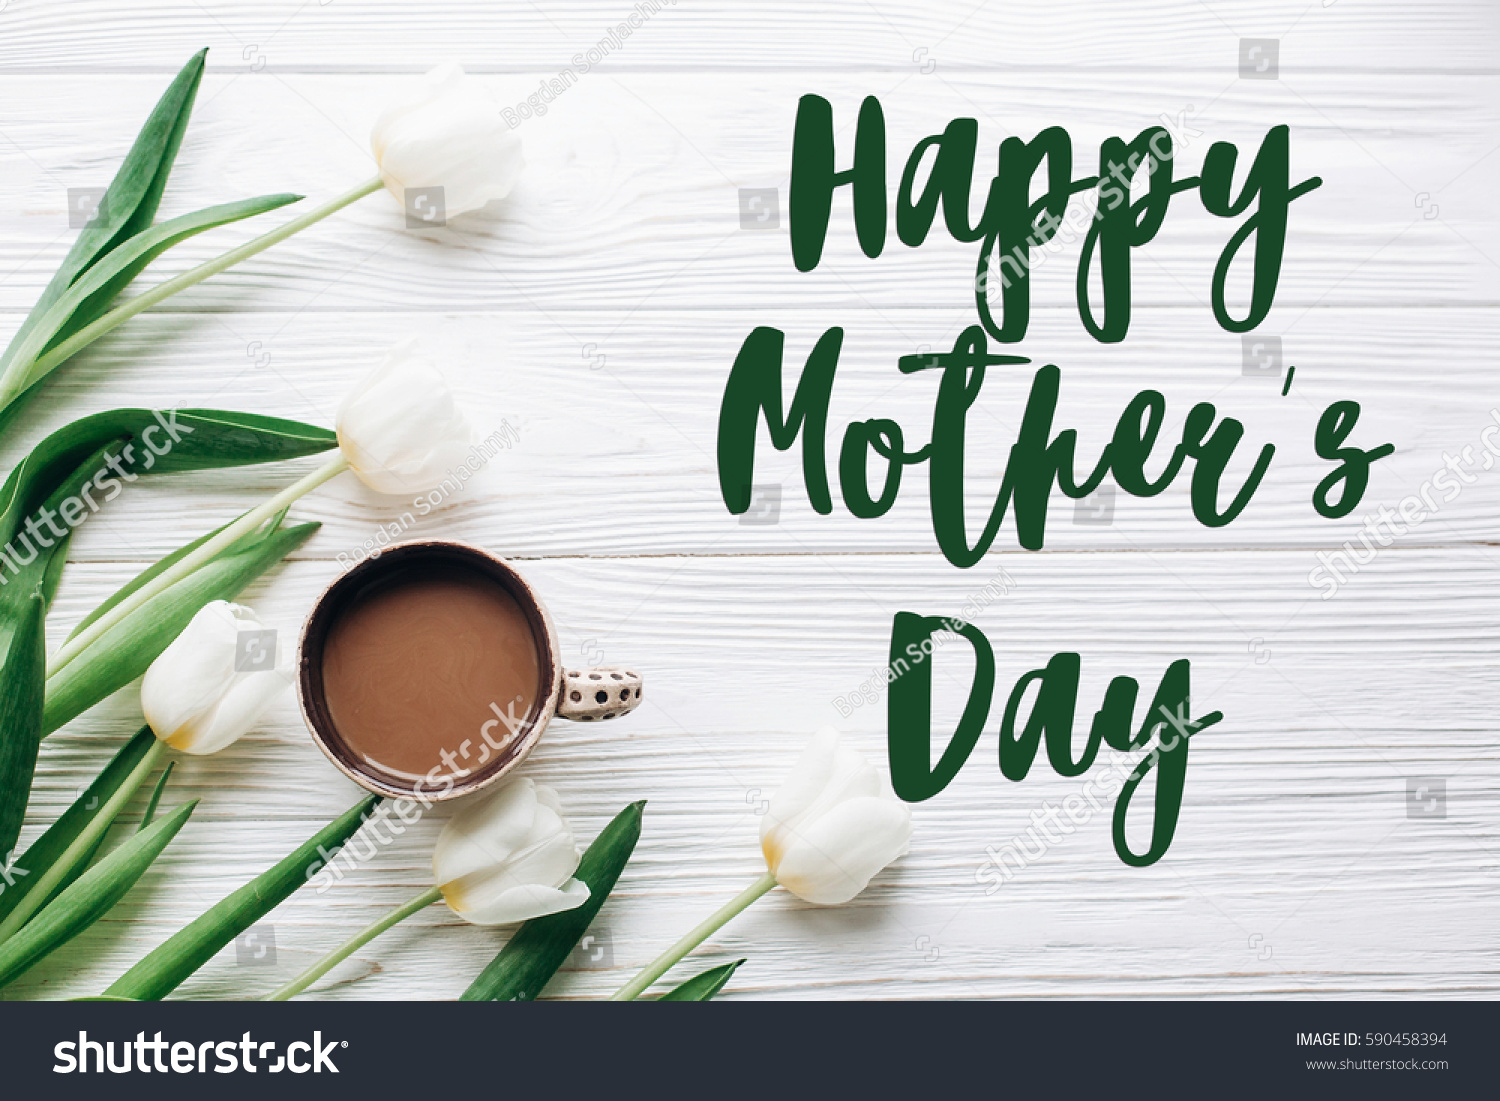 Happy mothers day text sign on stock photo 590458394 shutterstock happy mothers day text sign on tulips and coffee on white wooden rustic background stylish kristyandbryce Choice Image